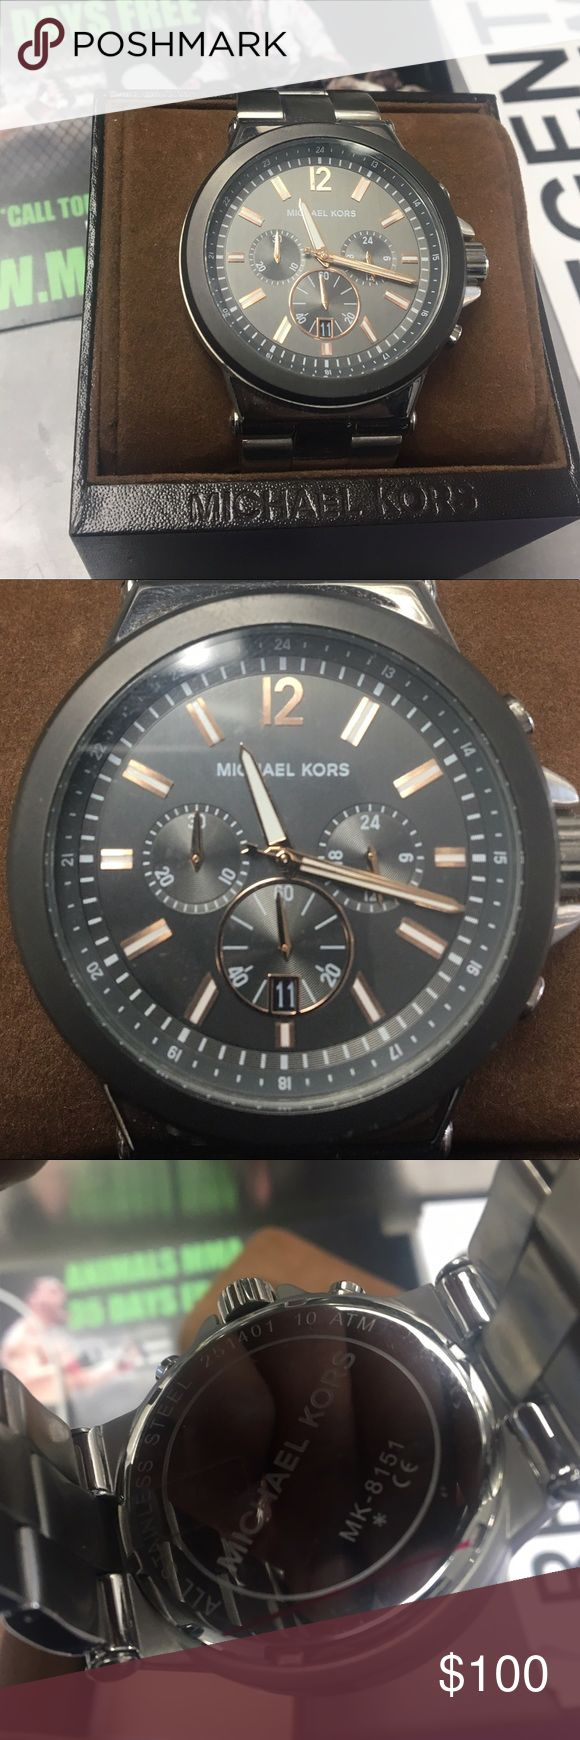 Michael kors men's watch Michael kors men's watch MK-8151 may need a battery vey great watch PRICE IS FINAL Michael Kors Accessories Watches